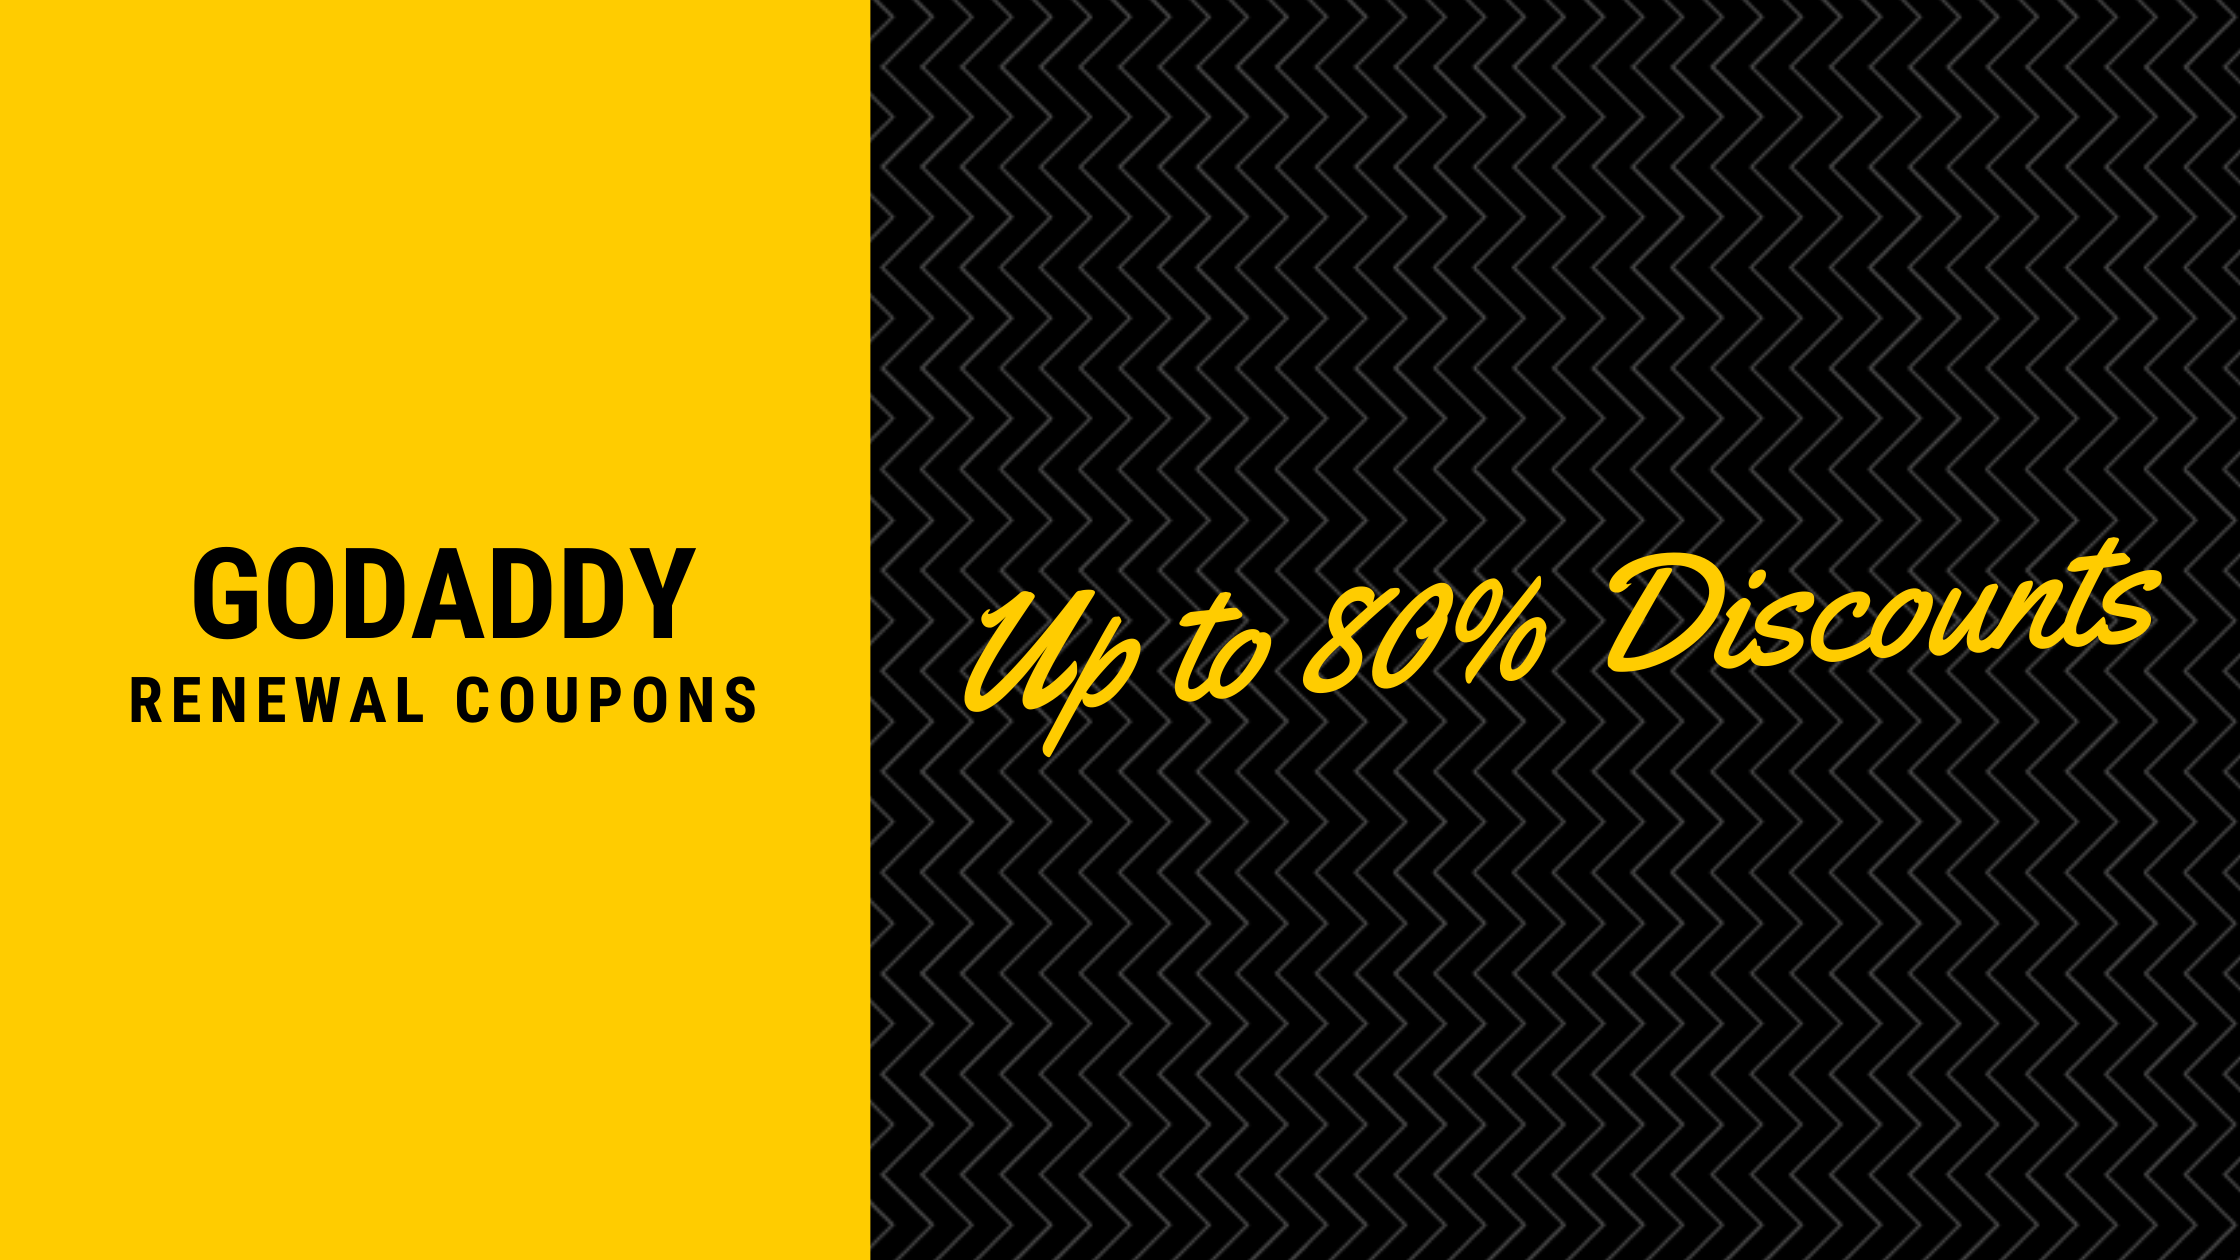 Godaddy renewal coupons 2021